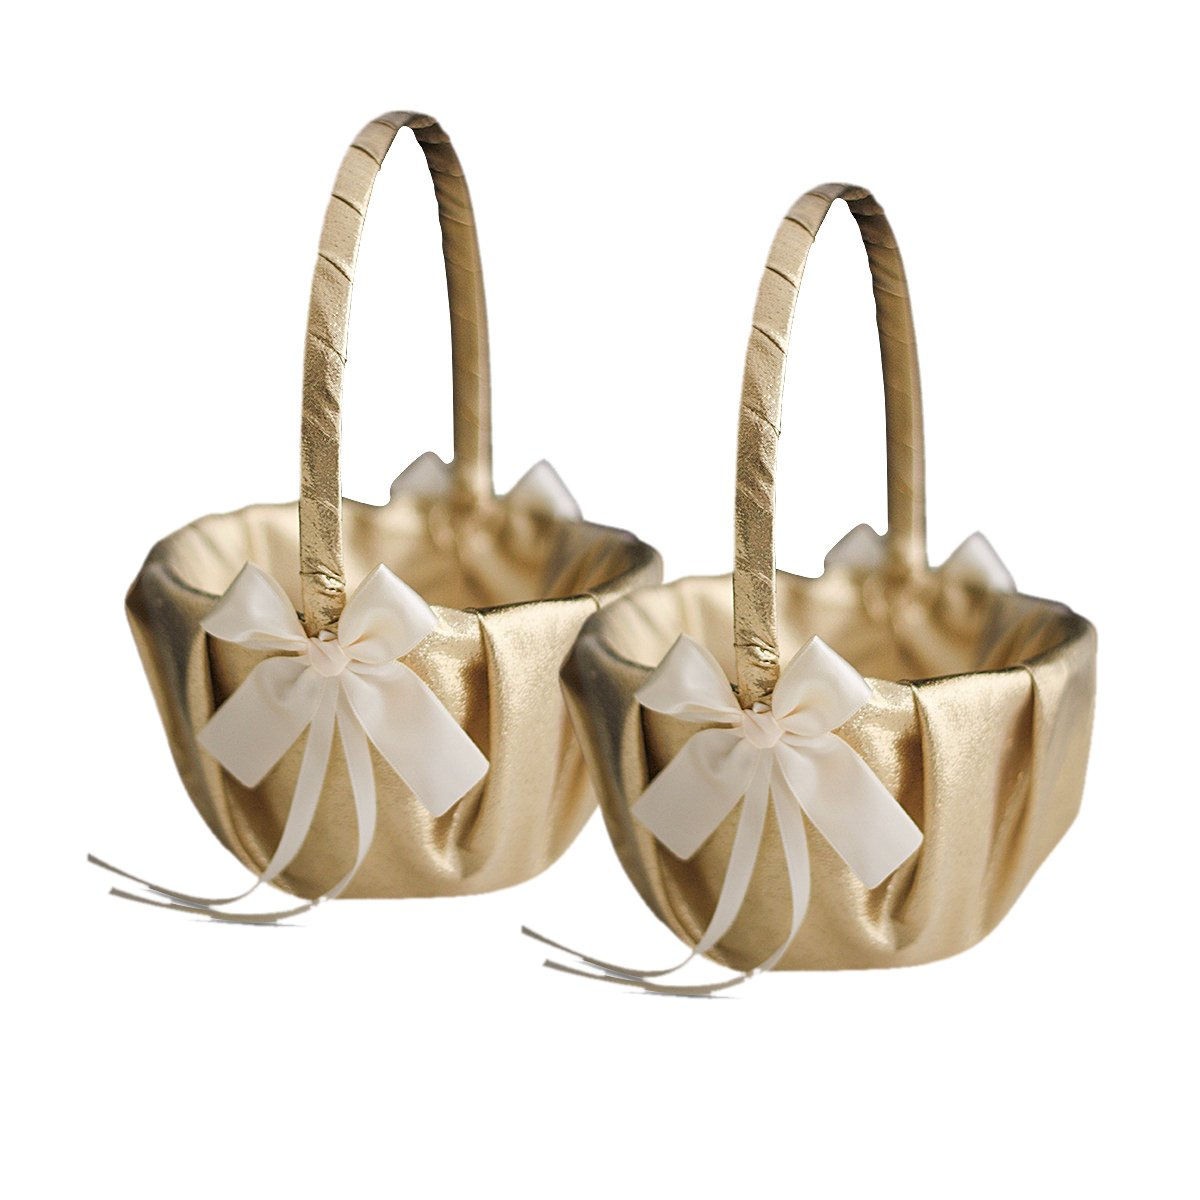 Roman Store Gold & Ivory Wedding Ring Bearer Pillow and Flower Girl Basket Set - Satin & Ribbons - Pairs Well with Most Dresses & Themes - Splendour Every Wedding Deserves